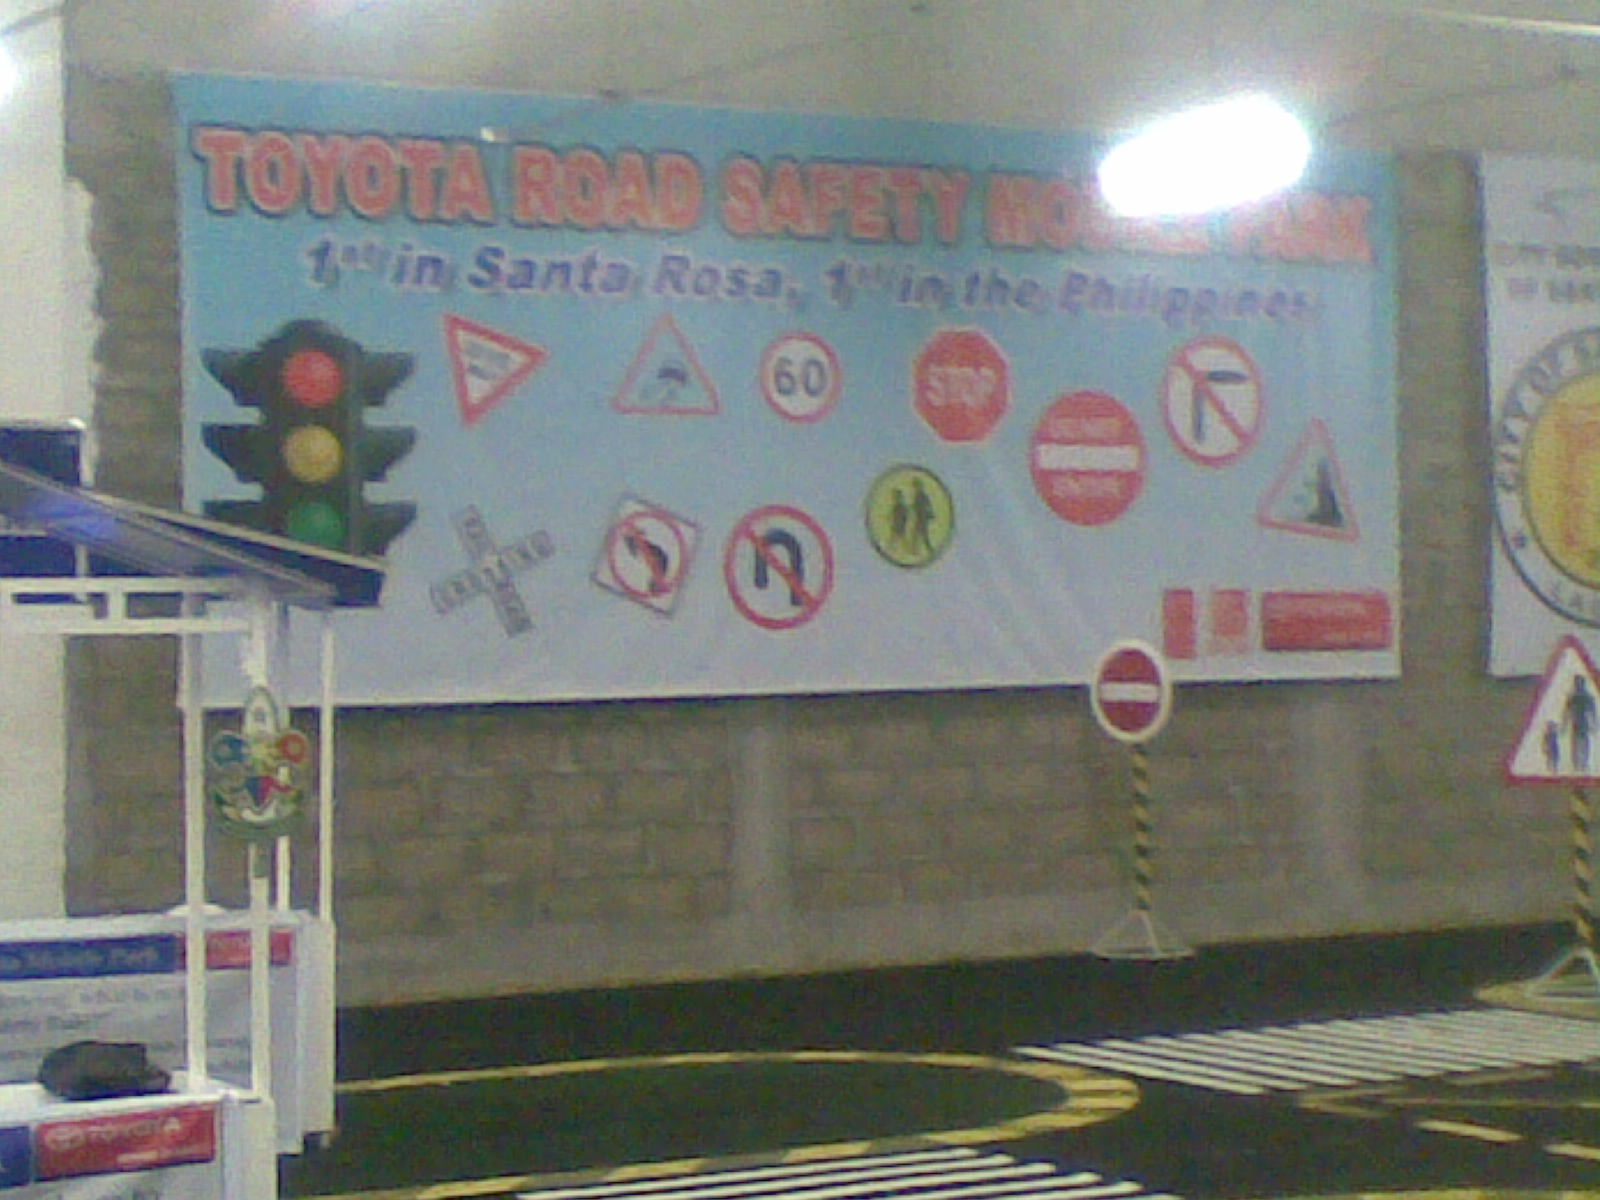 Toyota Road Safety Mobile Park